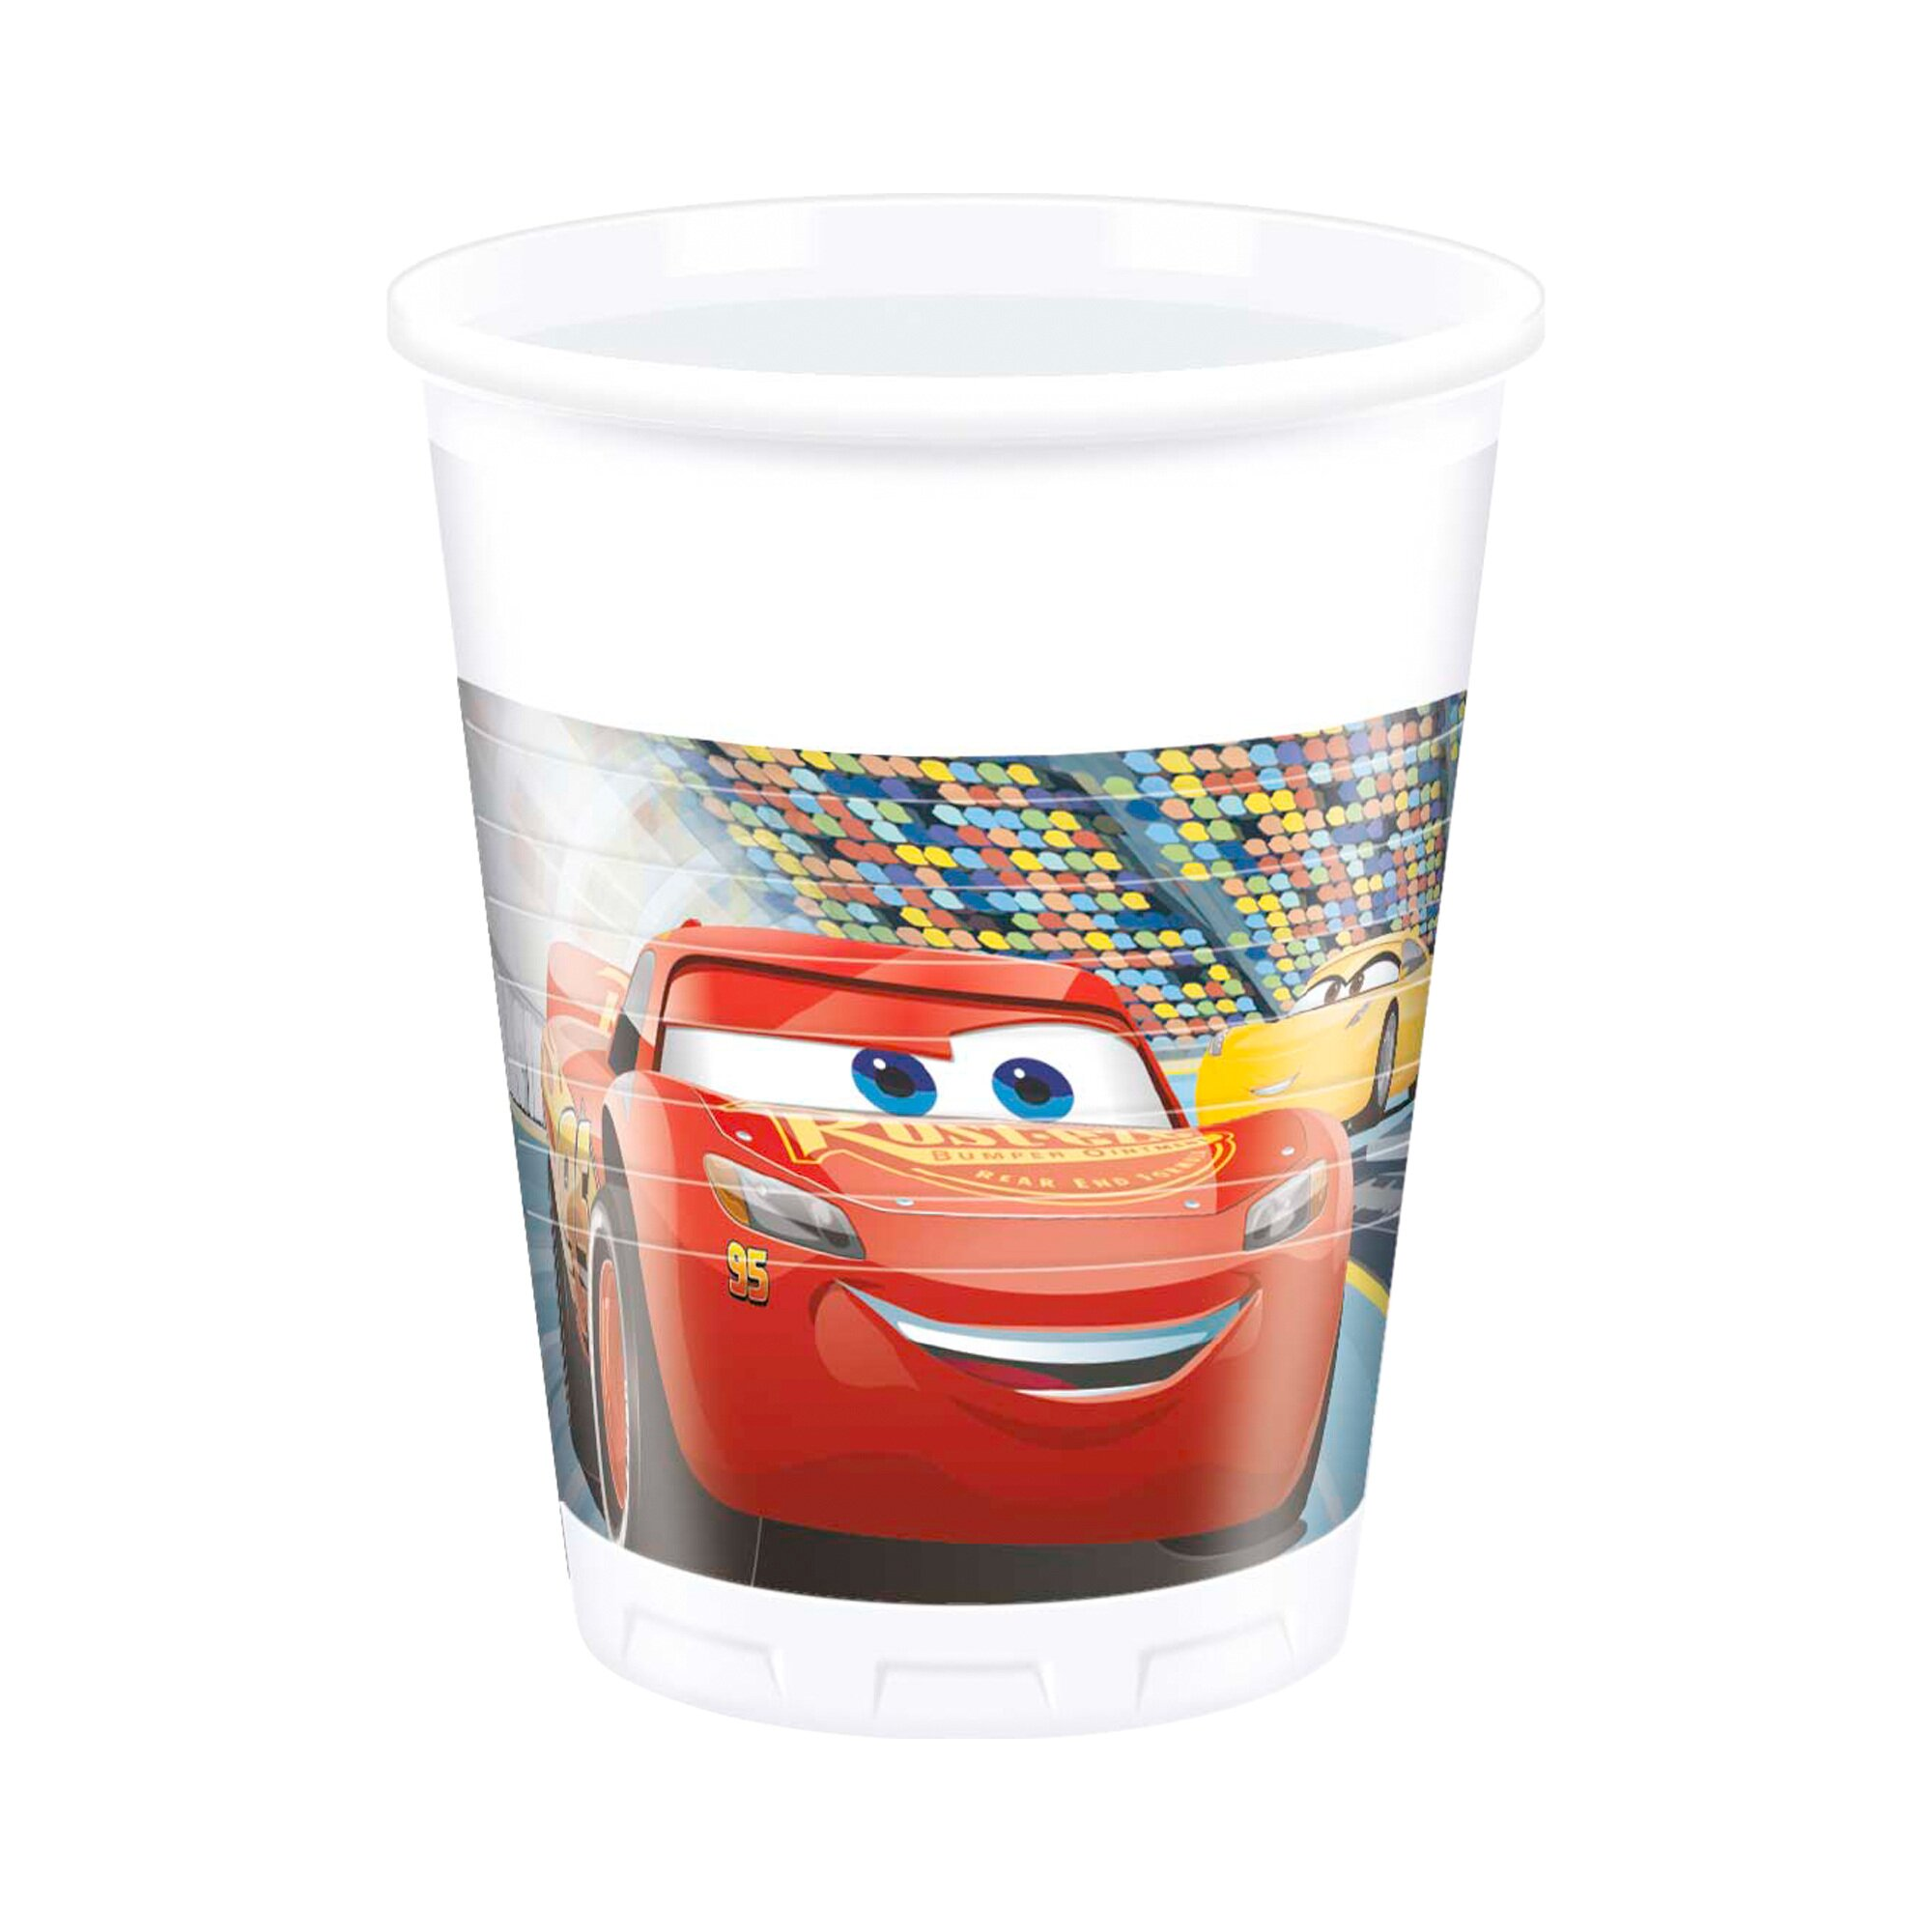 party-set-gro-cars-fur-6-personen, 19.99 EUR @ babywalz-de